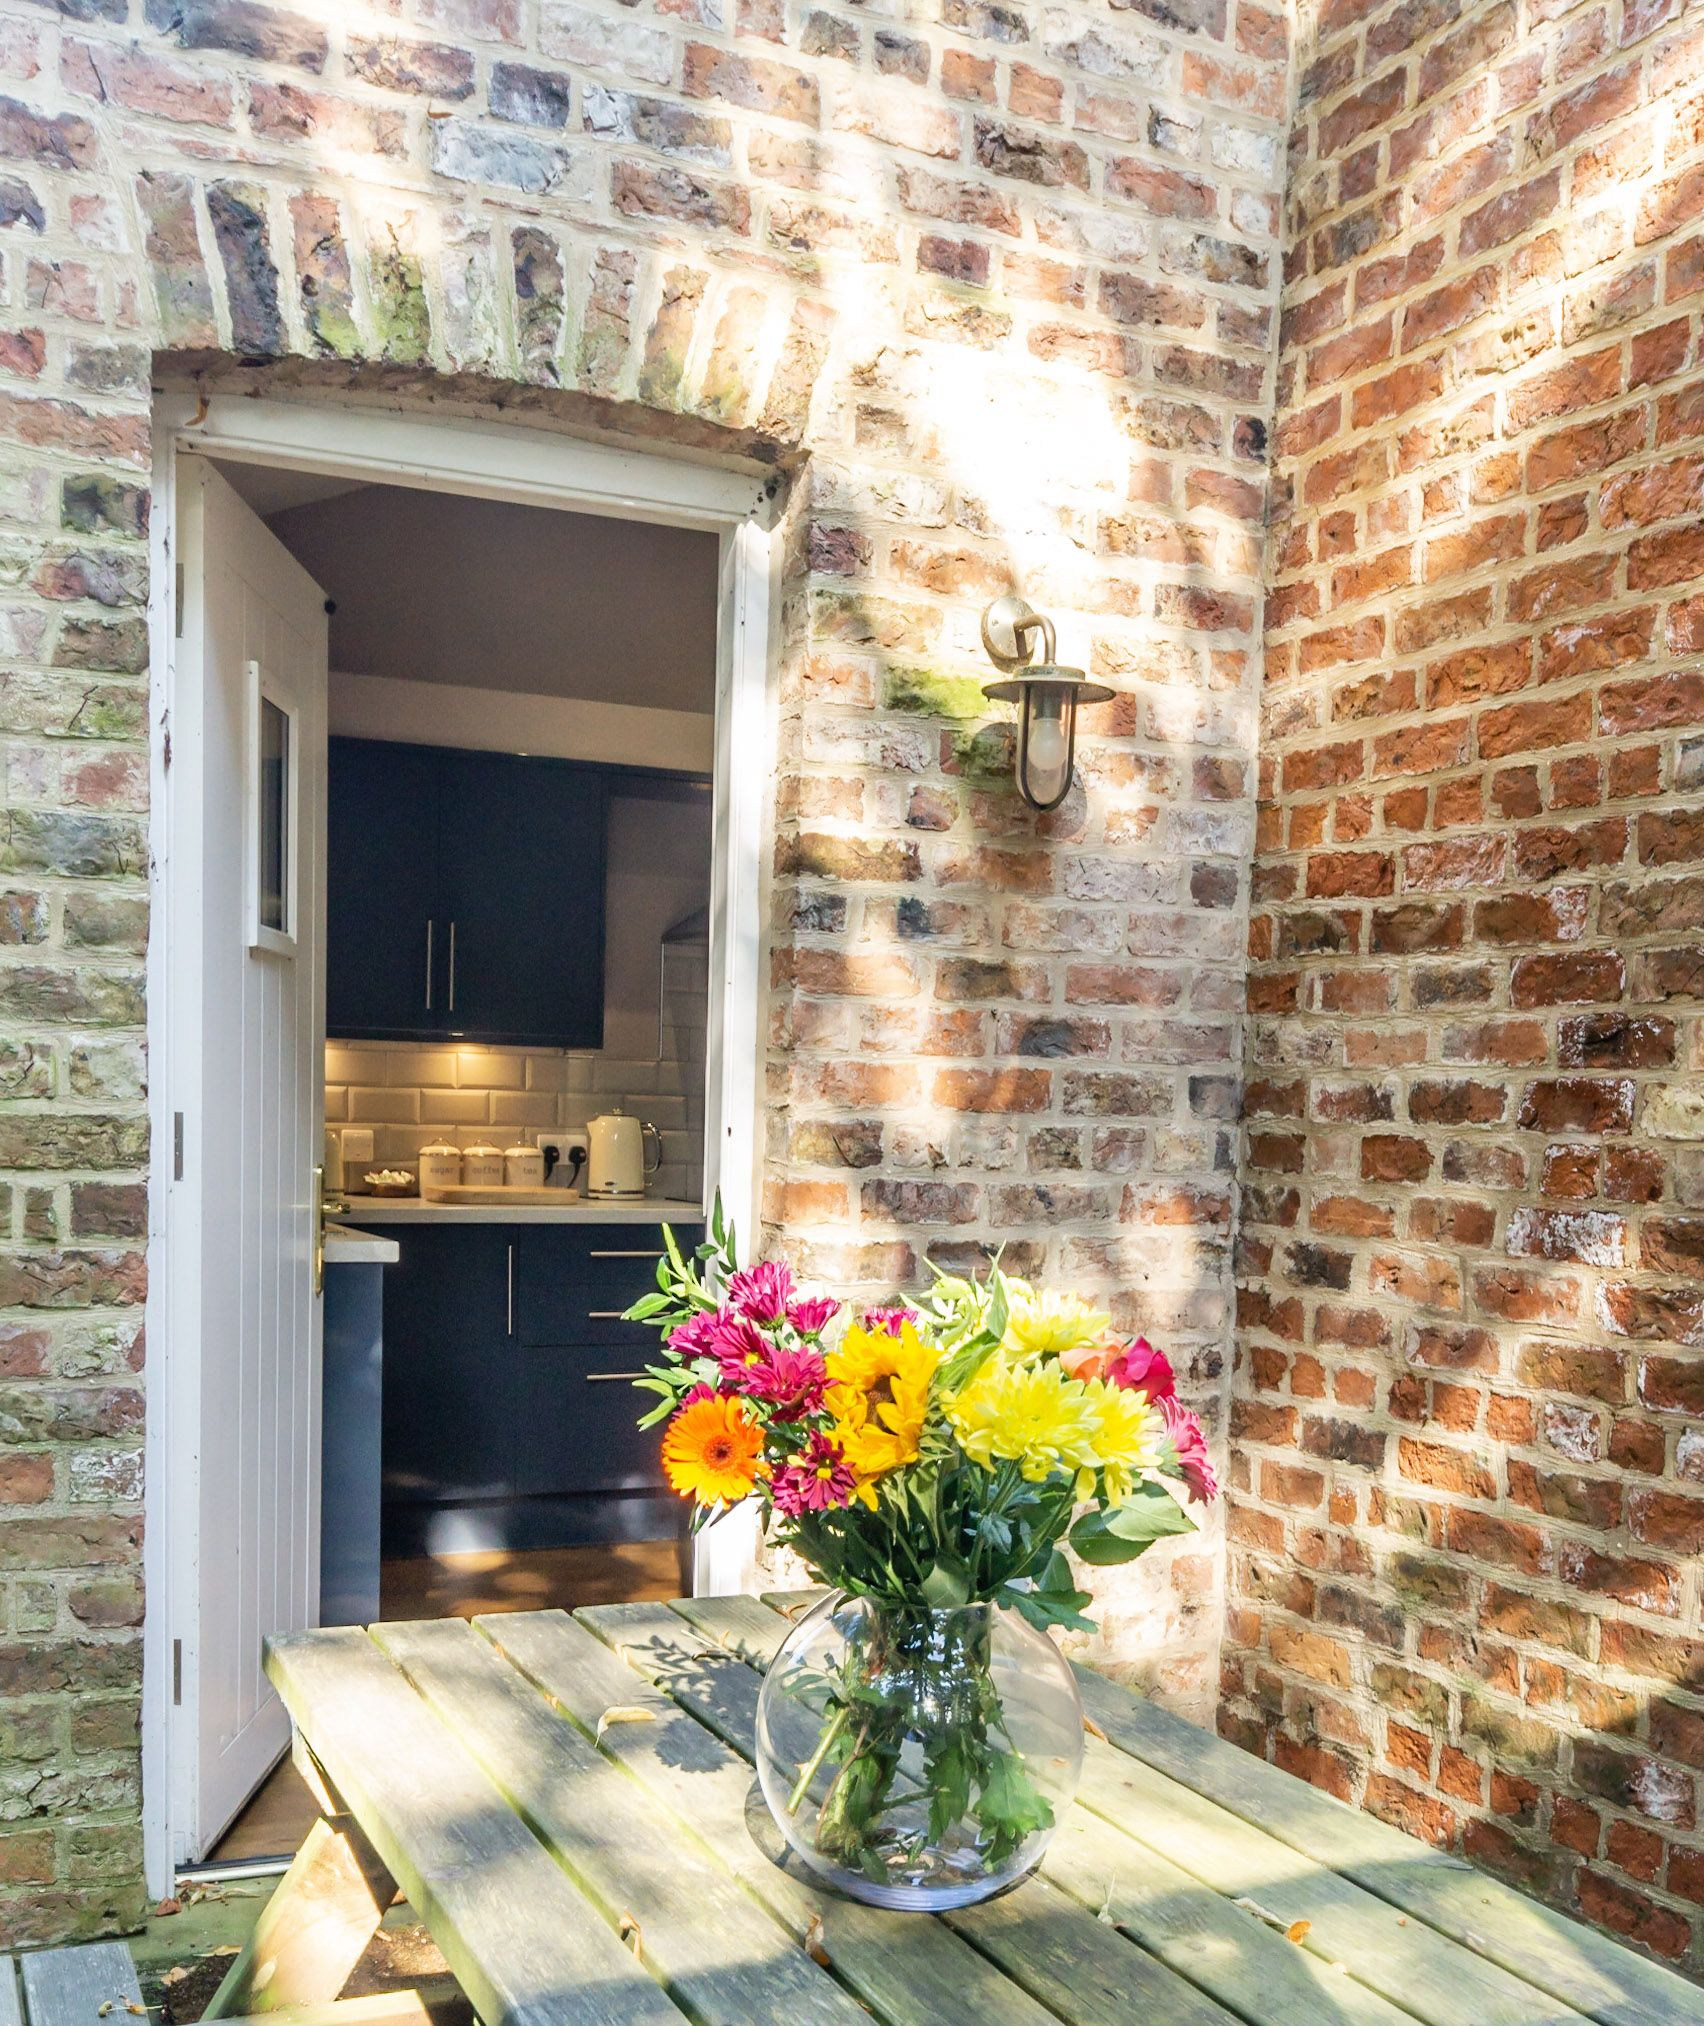 Middlethorpe Manor Cottages - No1 Relax and Unwind